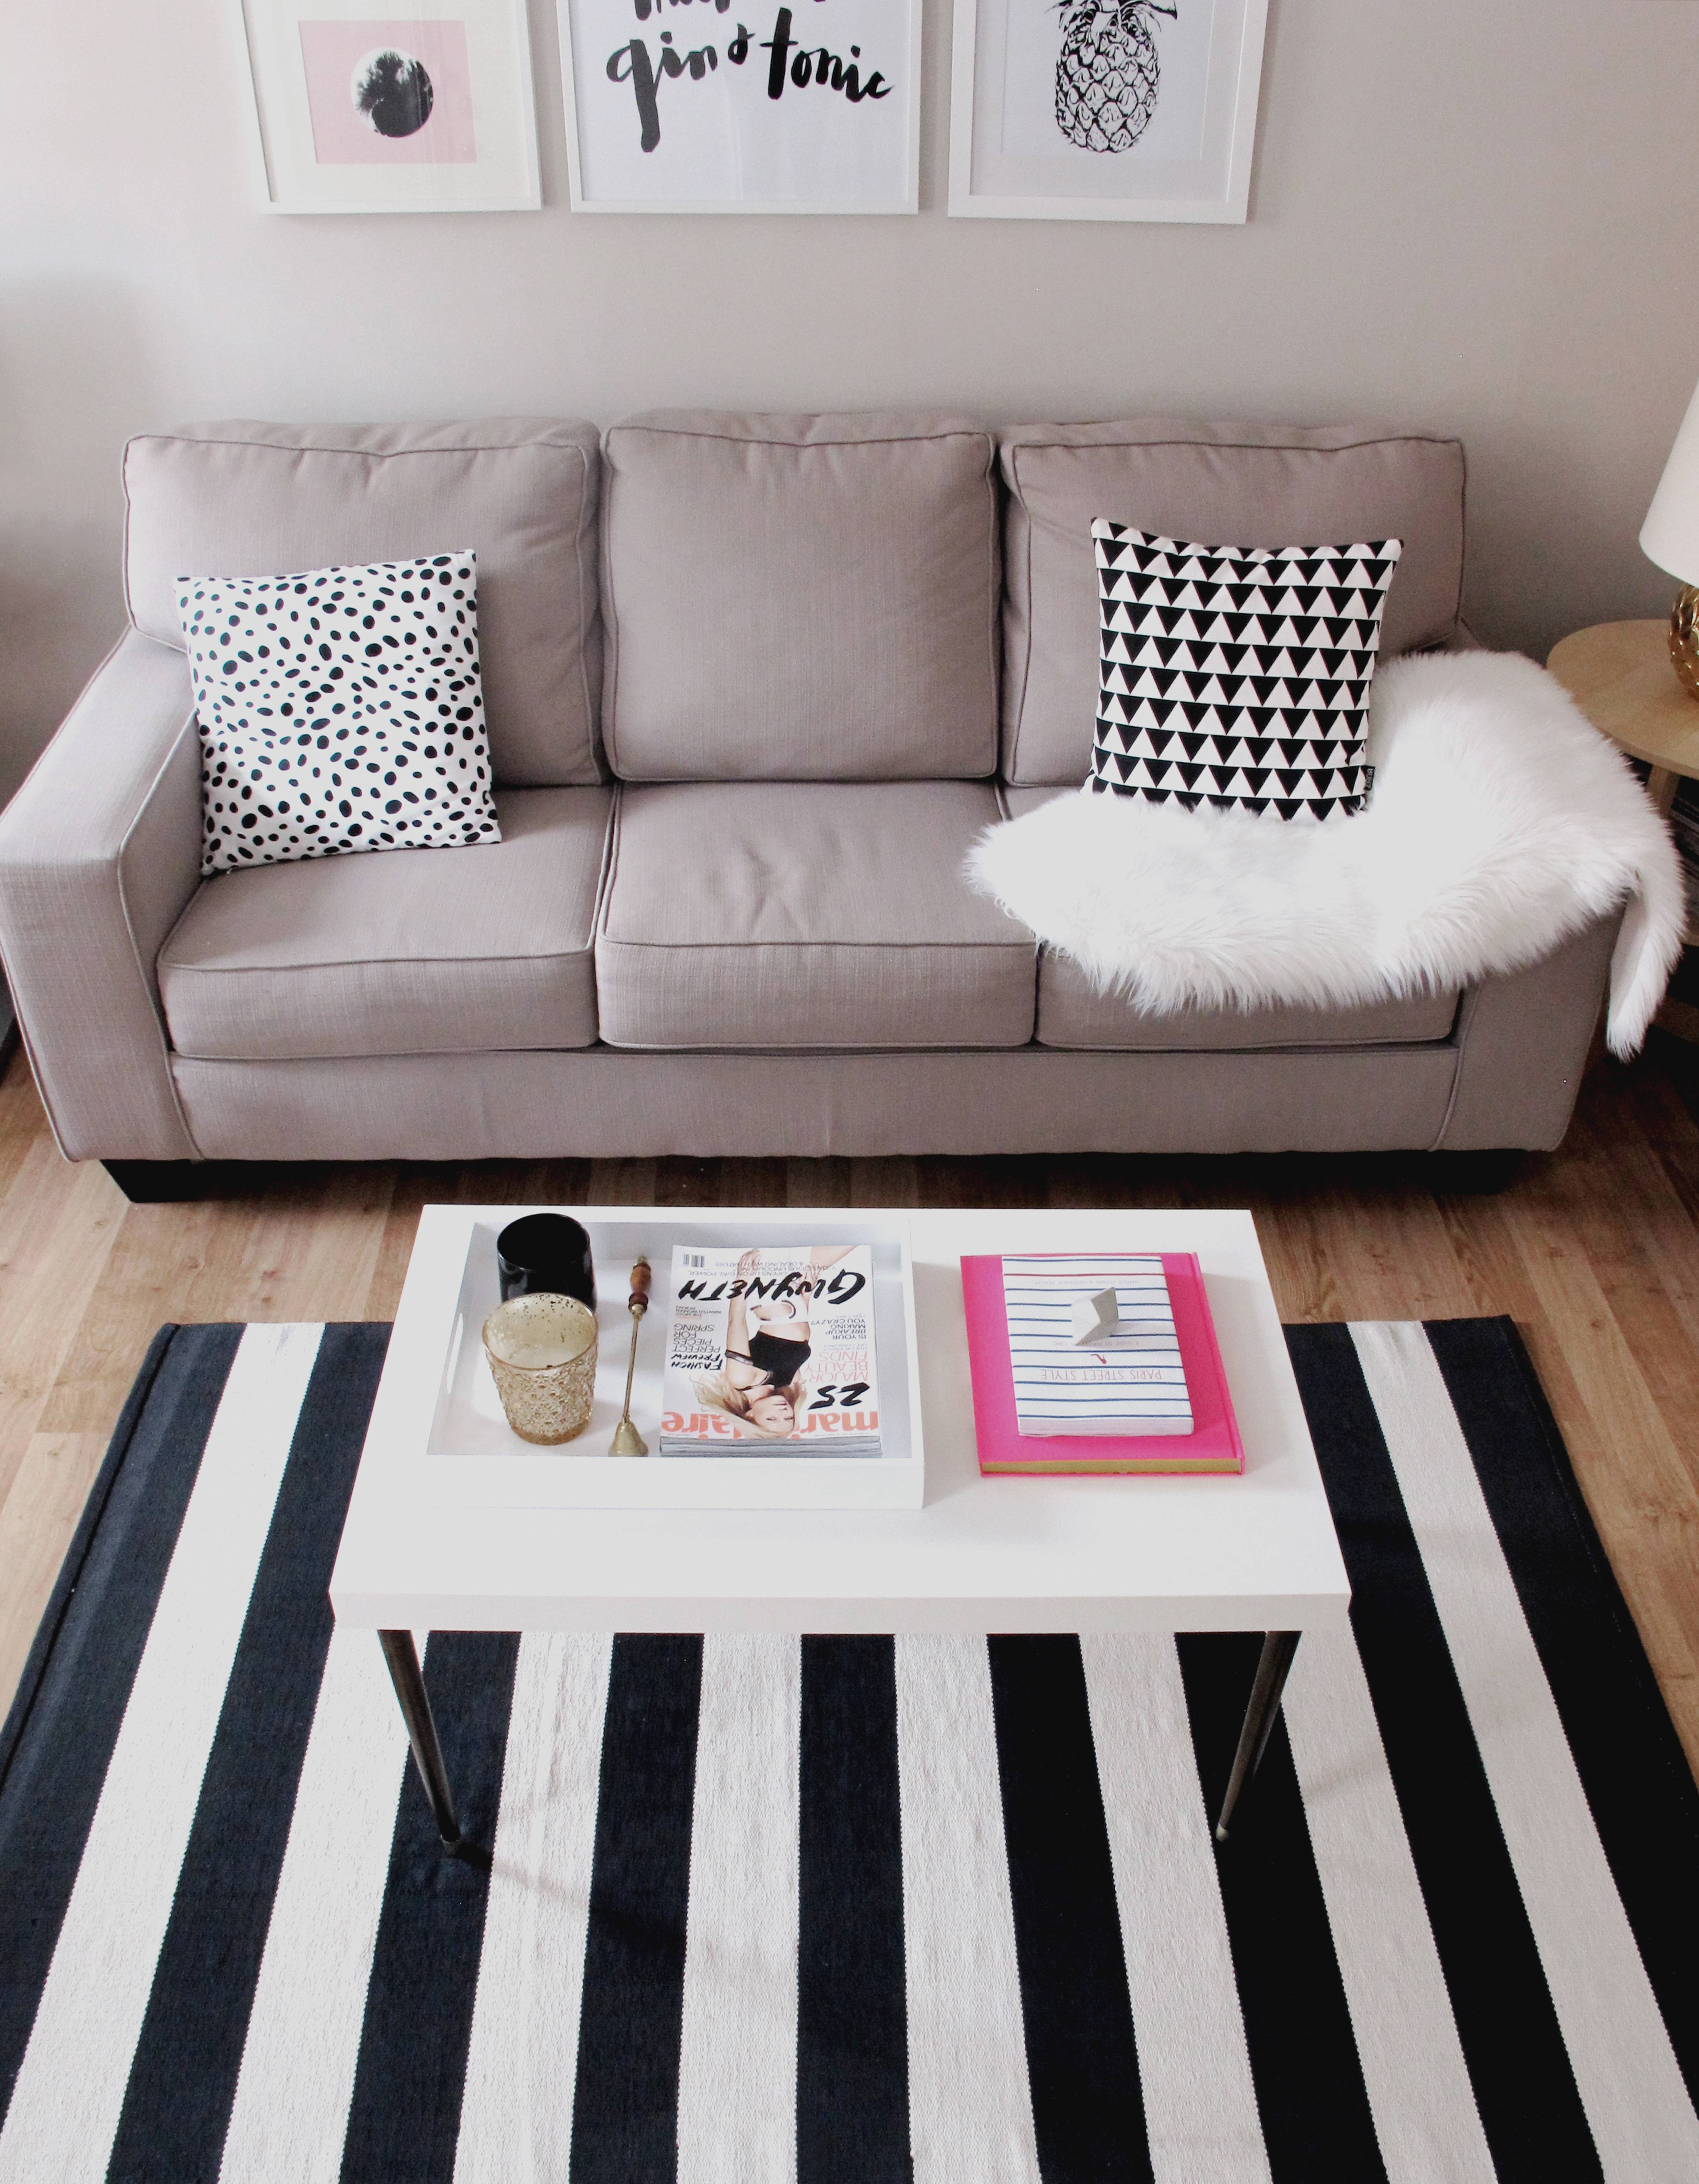 Flooring: Chic Rug Pads For Hardwood Floors For Home Interior intended for Eco Friendly Sectional Sofa (Image 18 of 30)